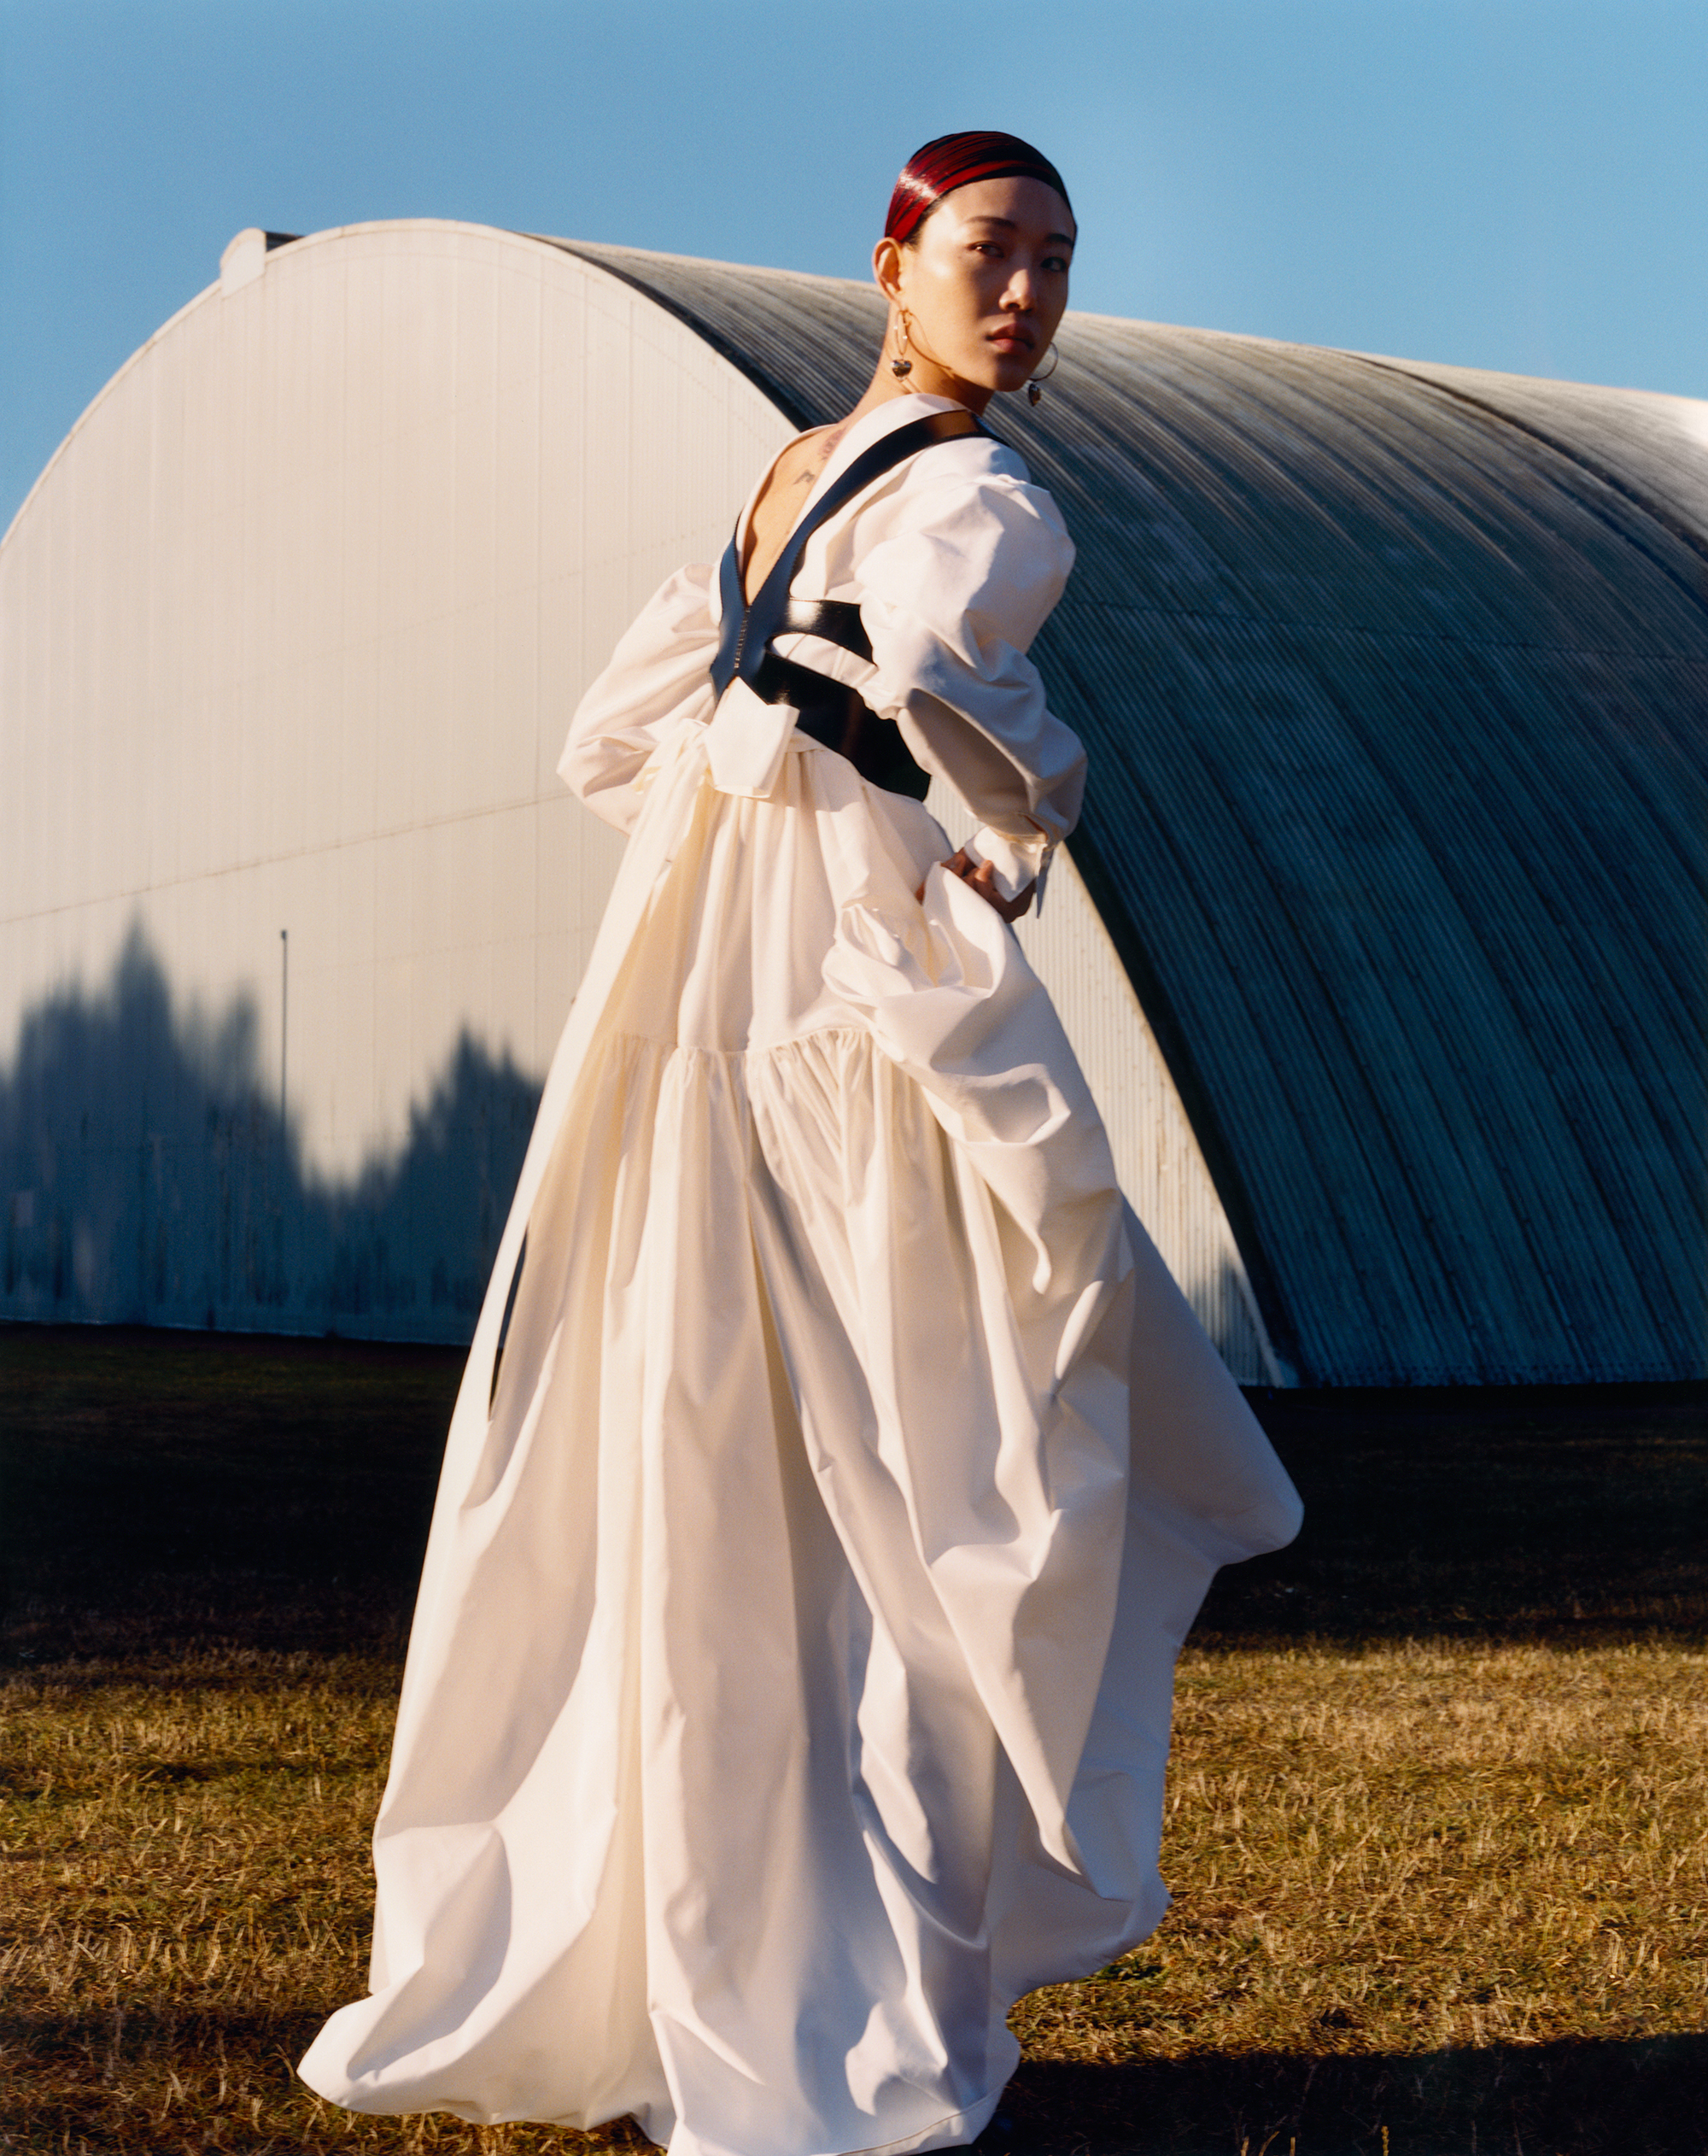 Alexander McQueen Autumn/Winter 2020 campaign white dress back